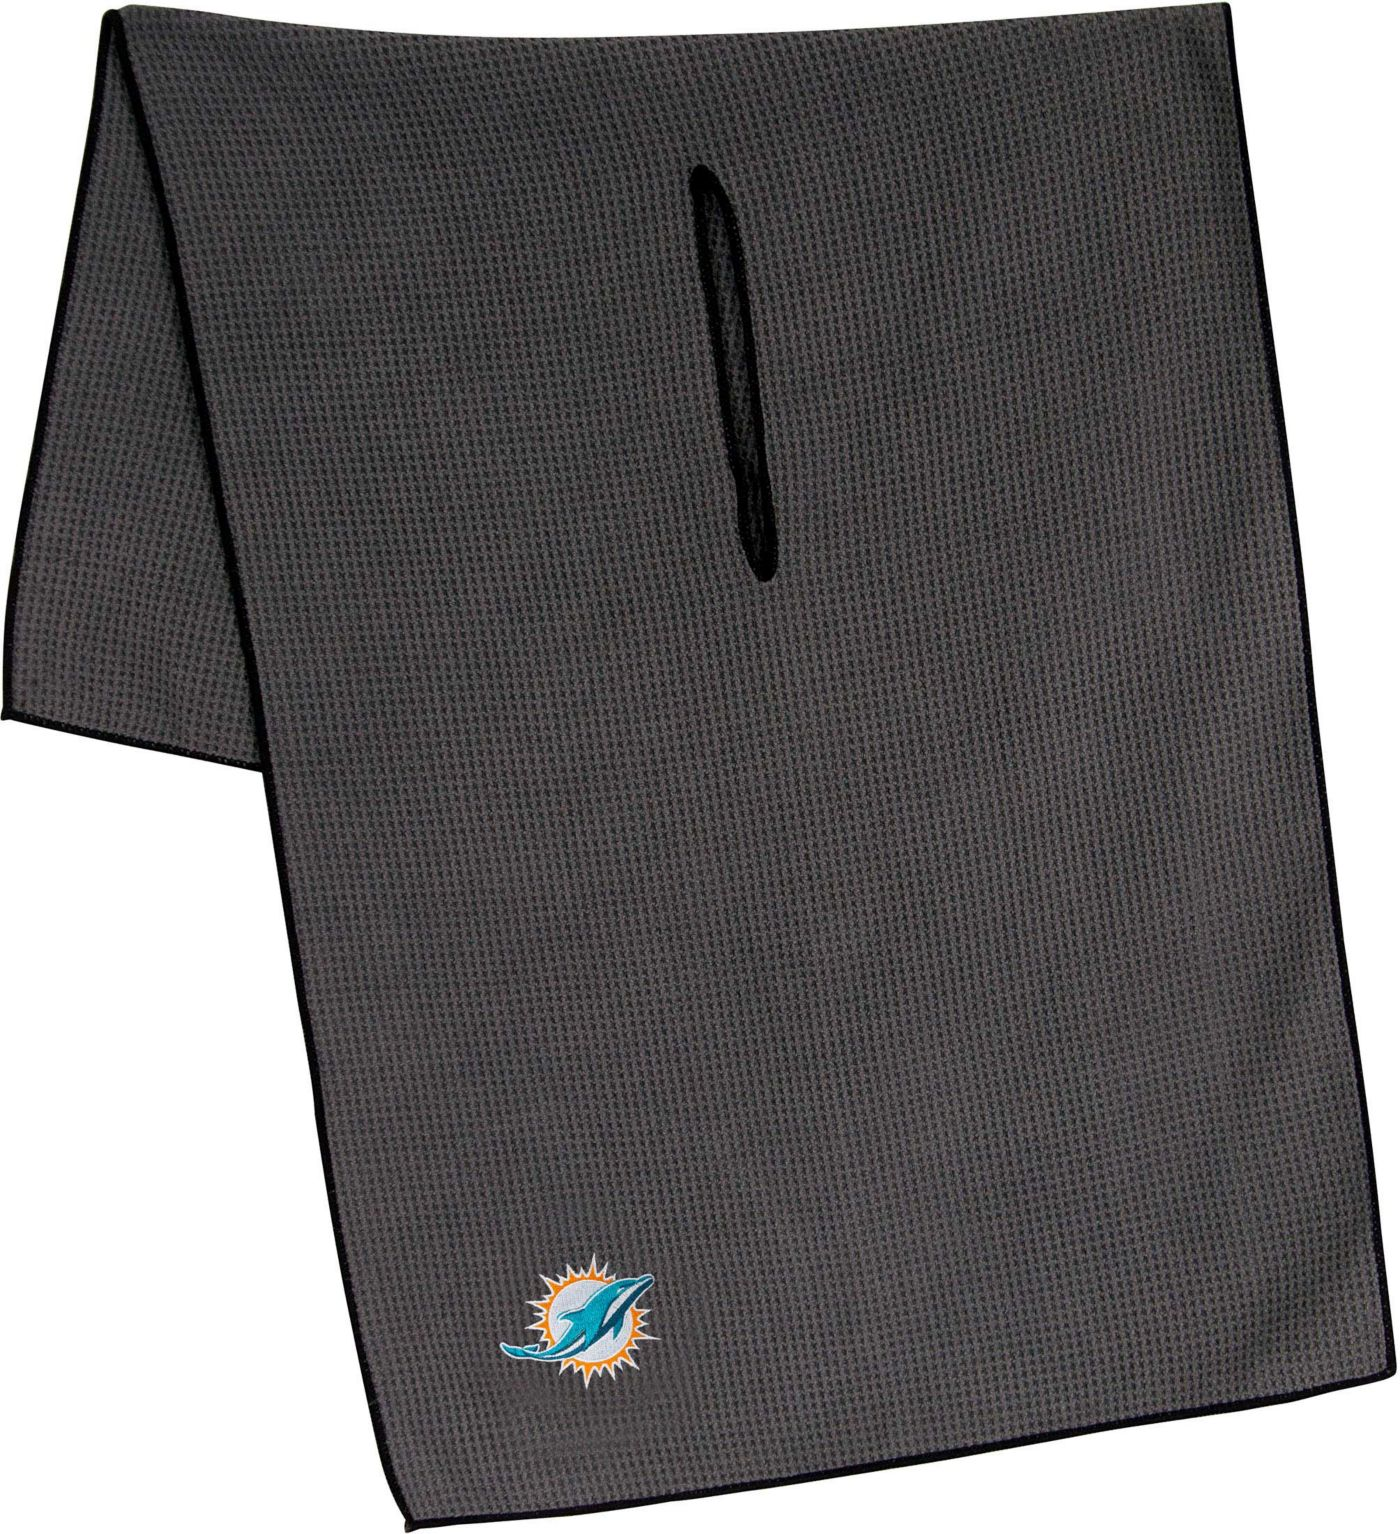 "Team Effort Miami Dolphins 19"" x 41"" Microfiber Golf Towel"